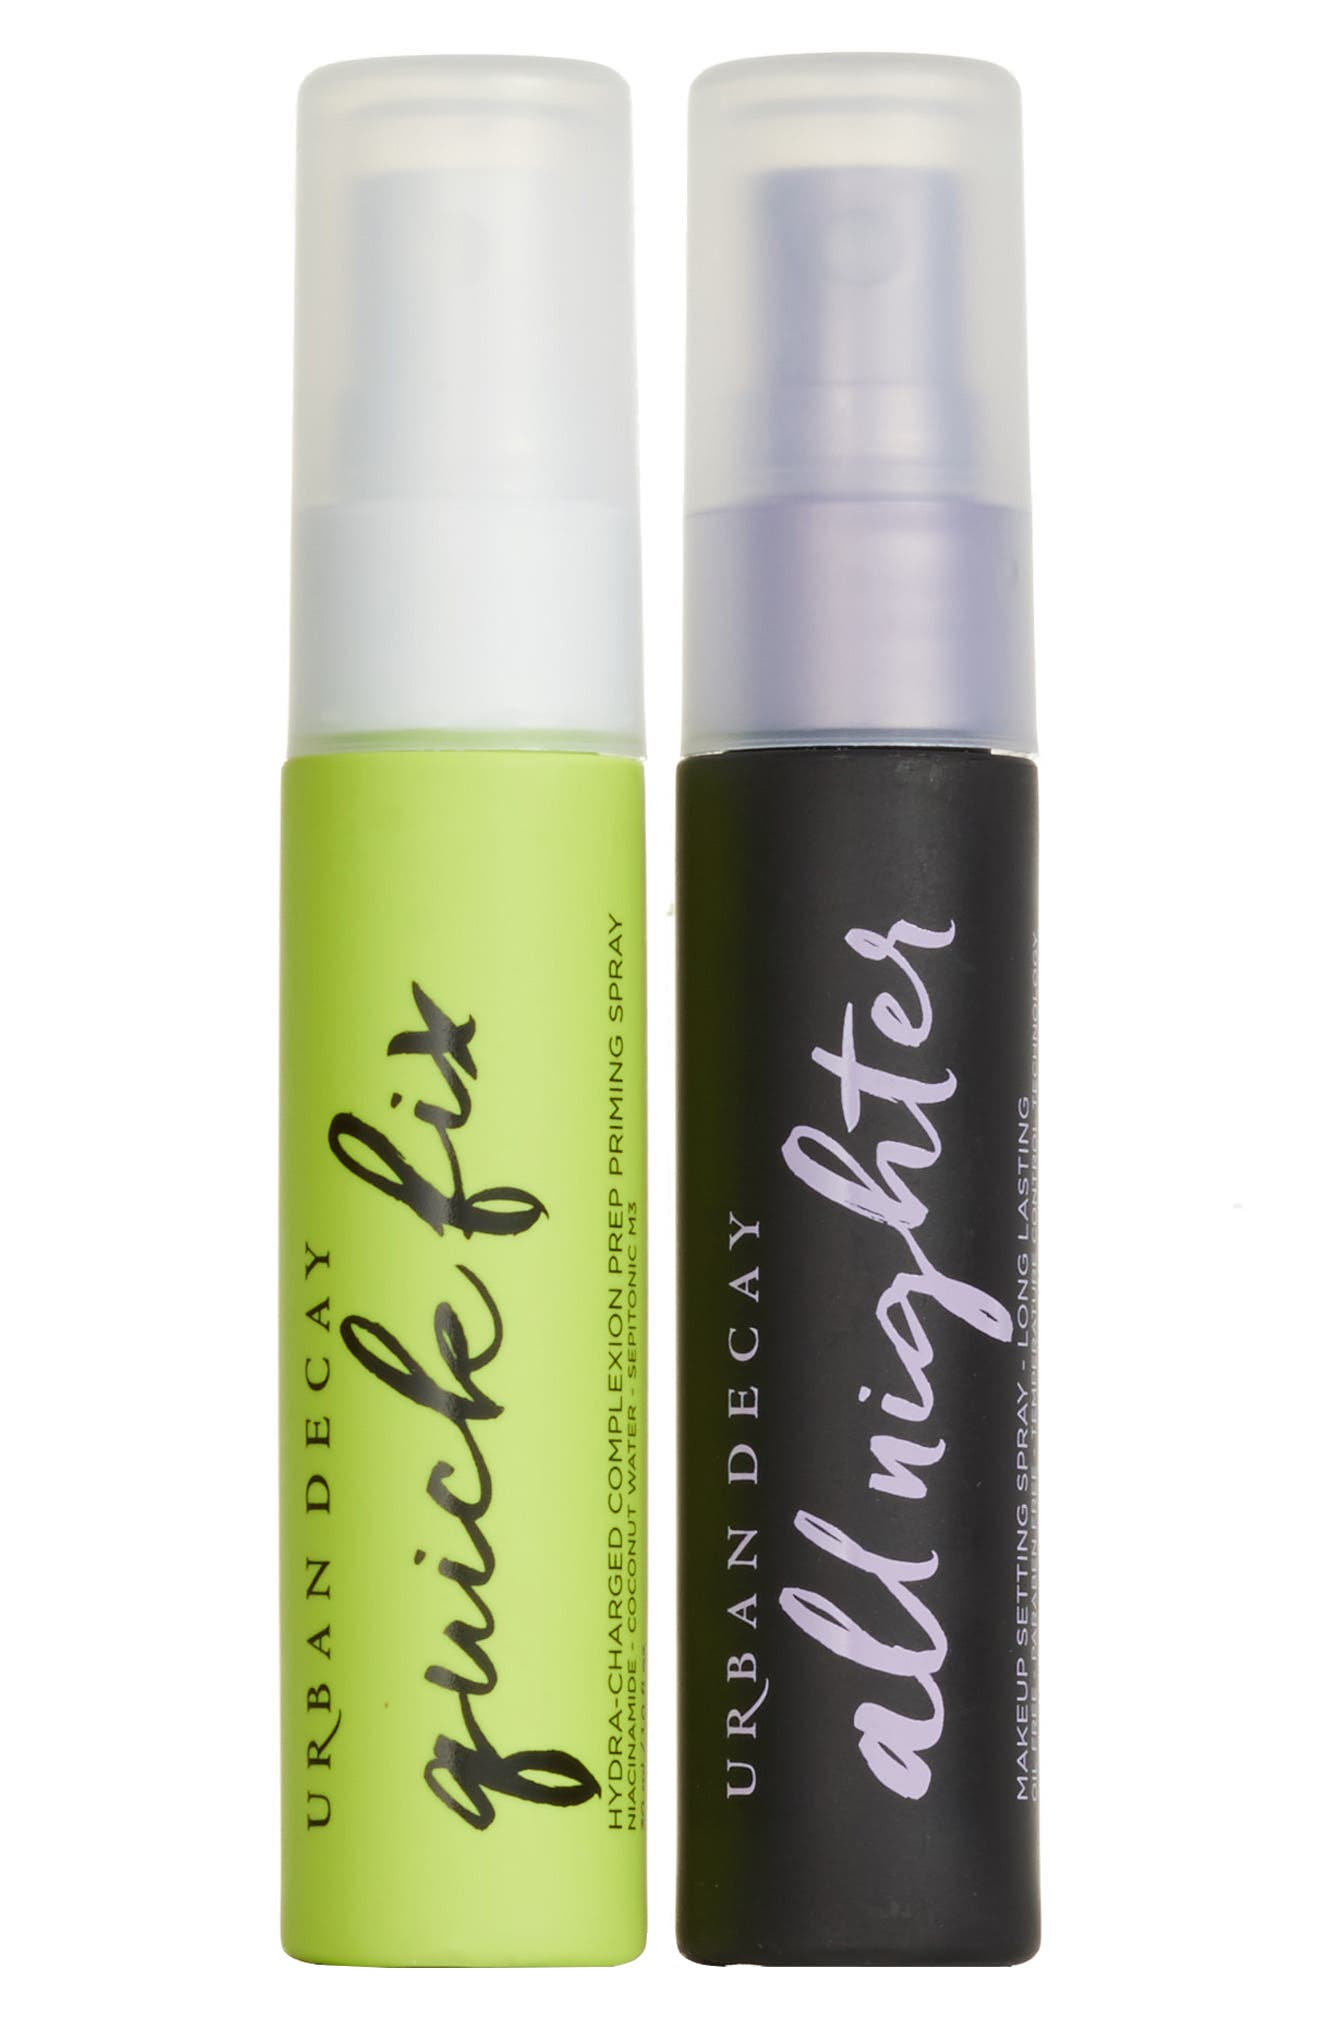 Urban Decay All Day All Night Travel Duo ($30 Value)